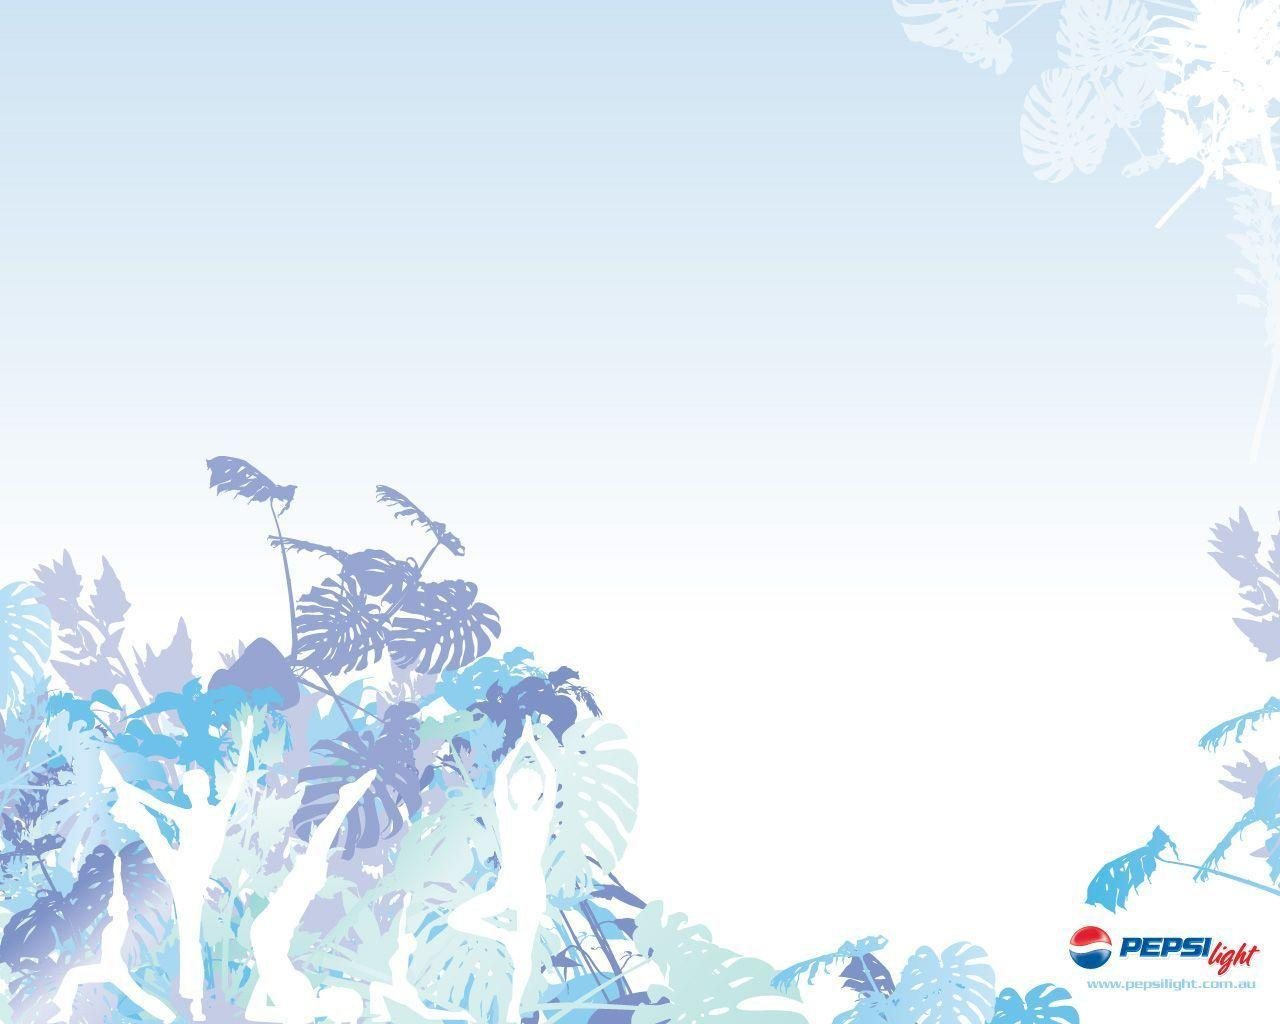 Image For > Pepsi Wallpapers 2012